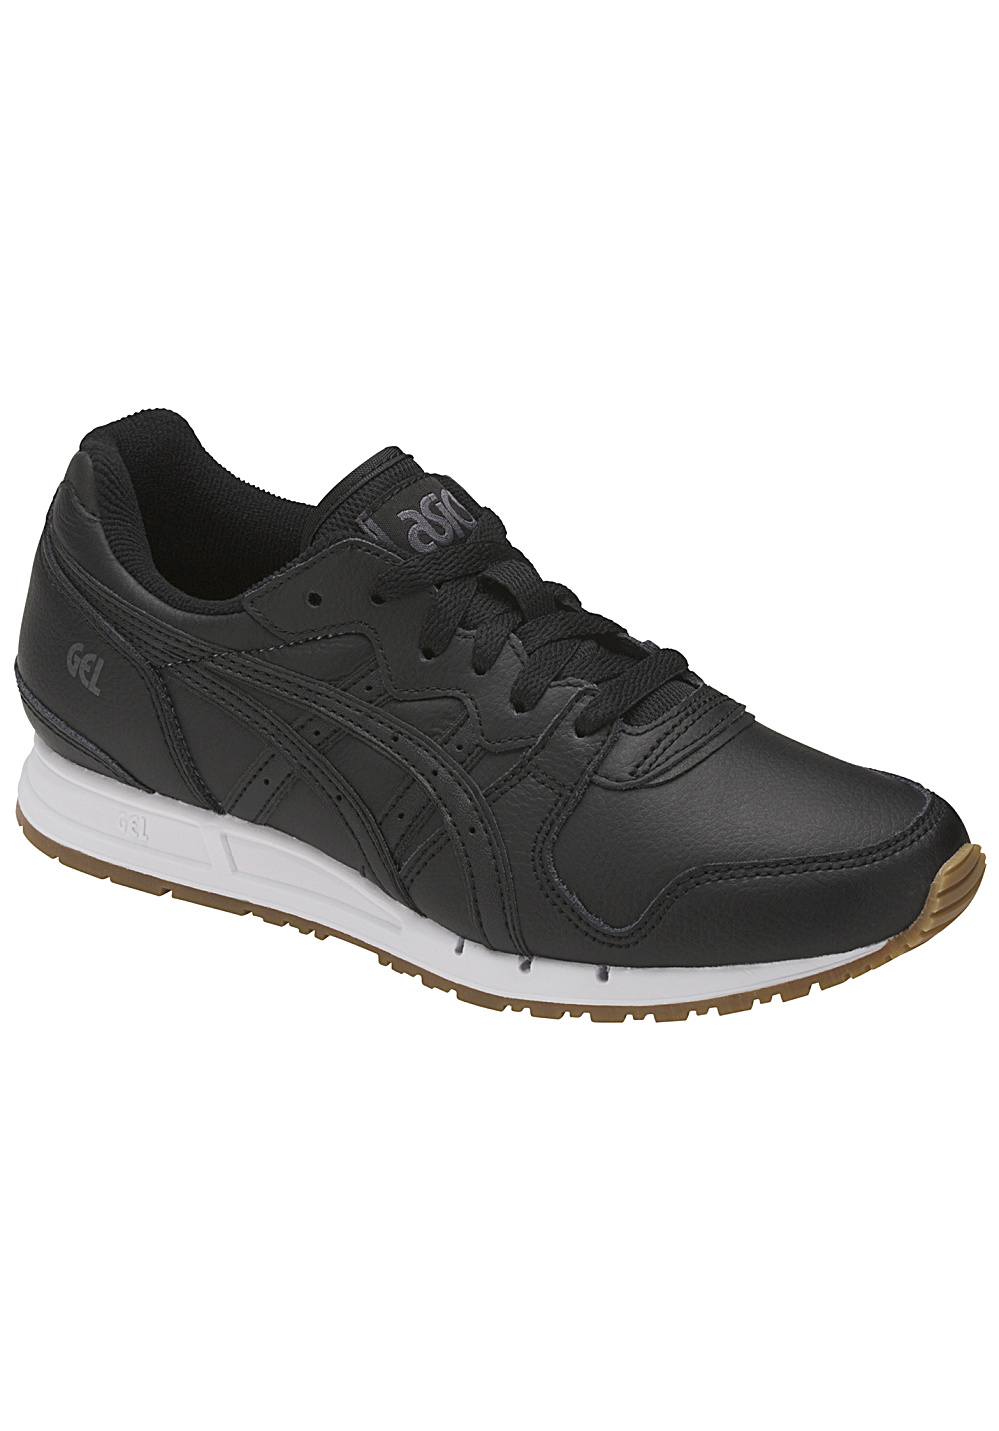 Asics Tiger Gel Movimentum Sneakers Black